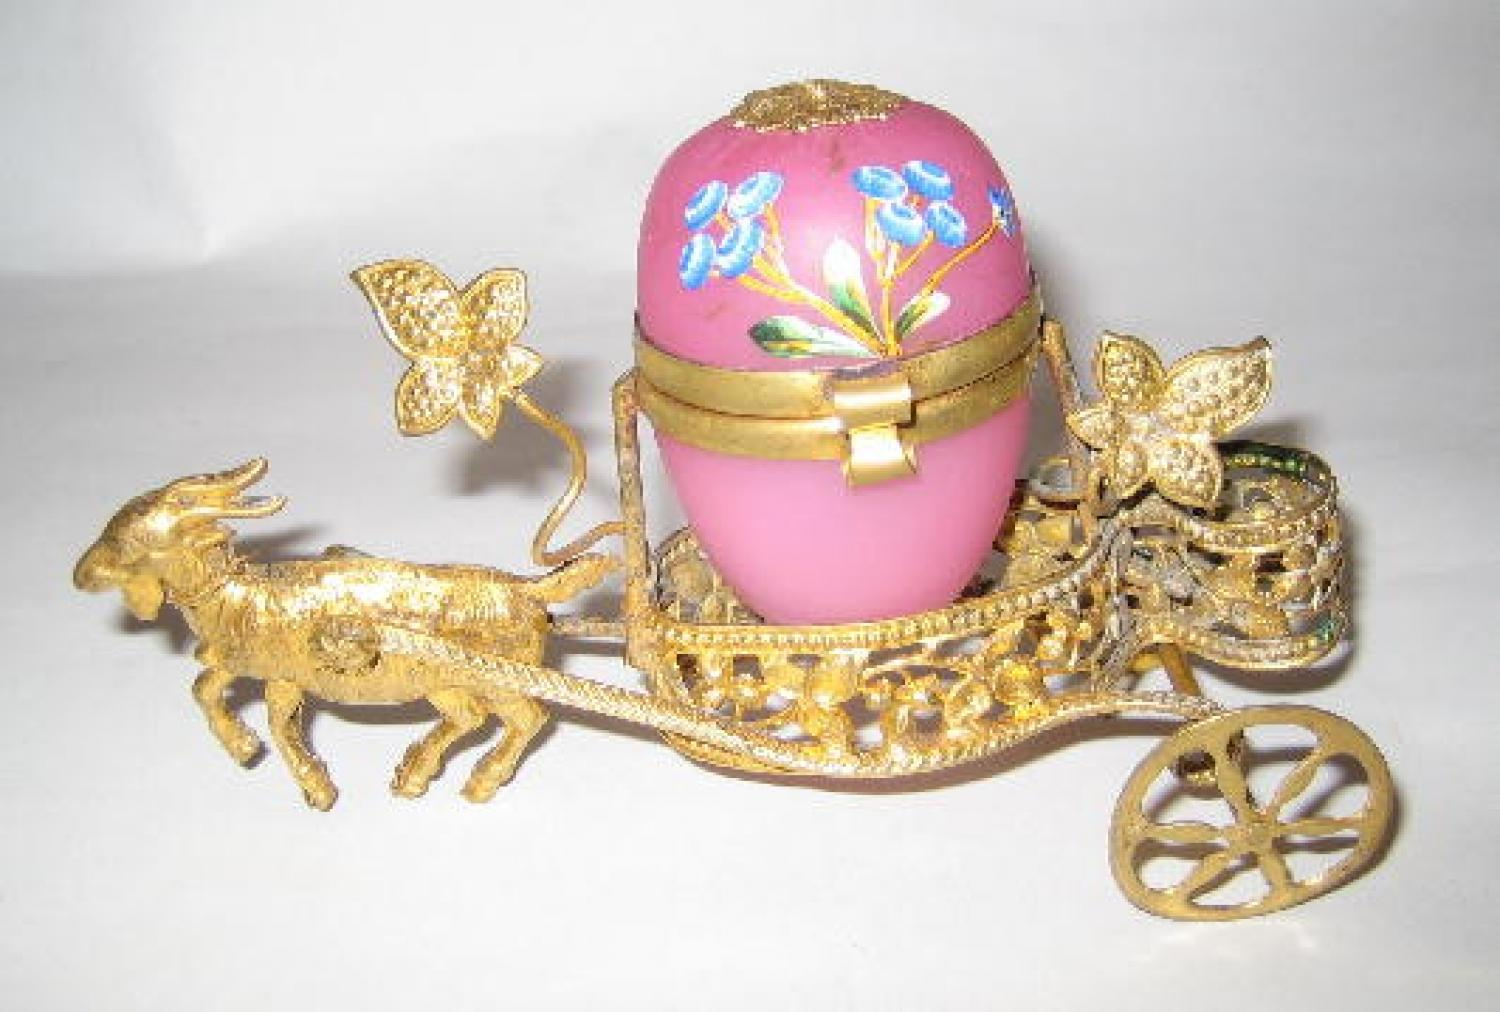 A Dinky Pink Opaline Glass Egg and Goat Cart